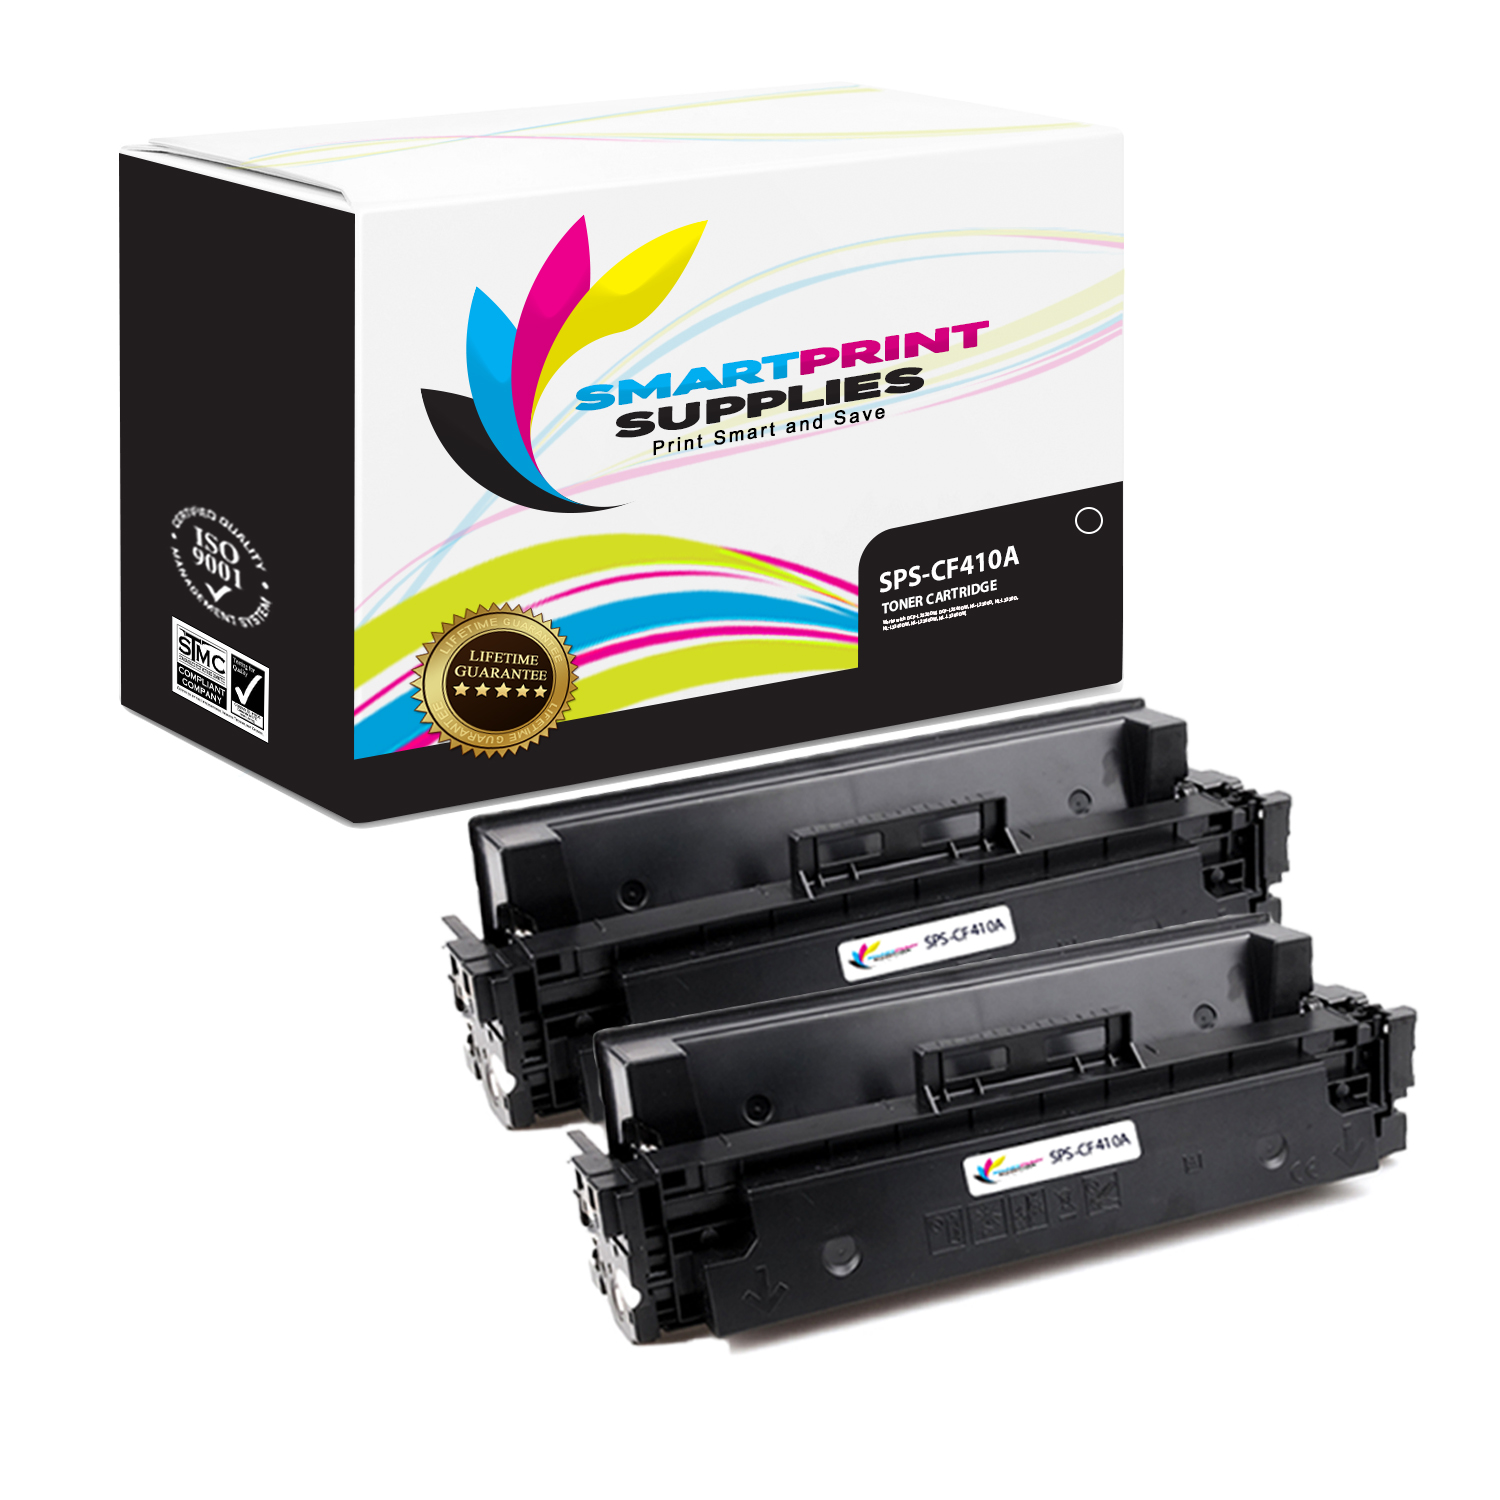 2PK  CF410X Black Toner Cartridges For HP LaserJet Pro  M377 M452 M477